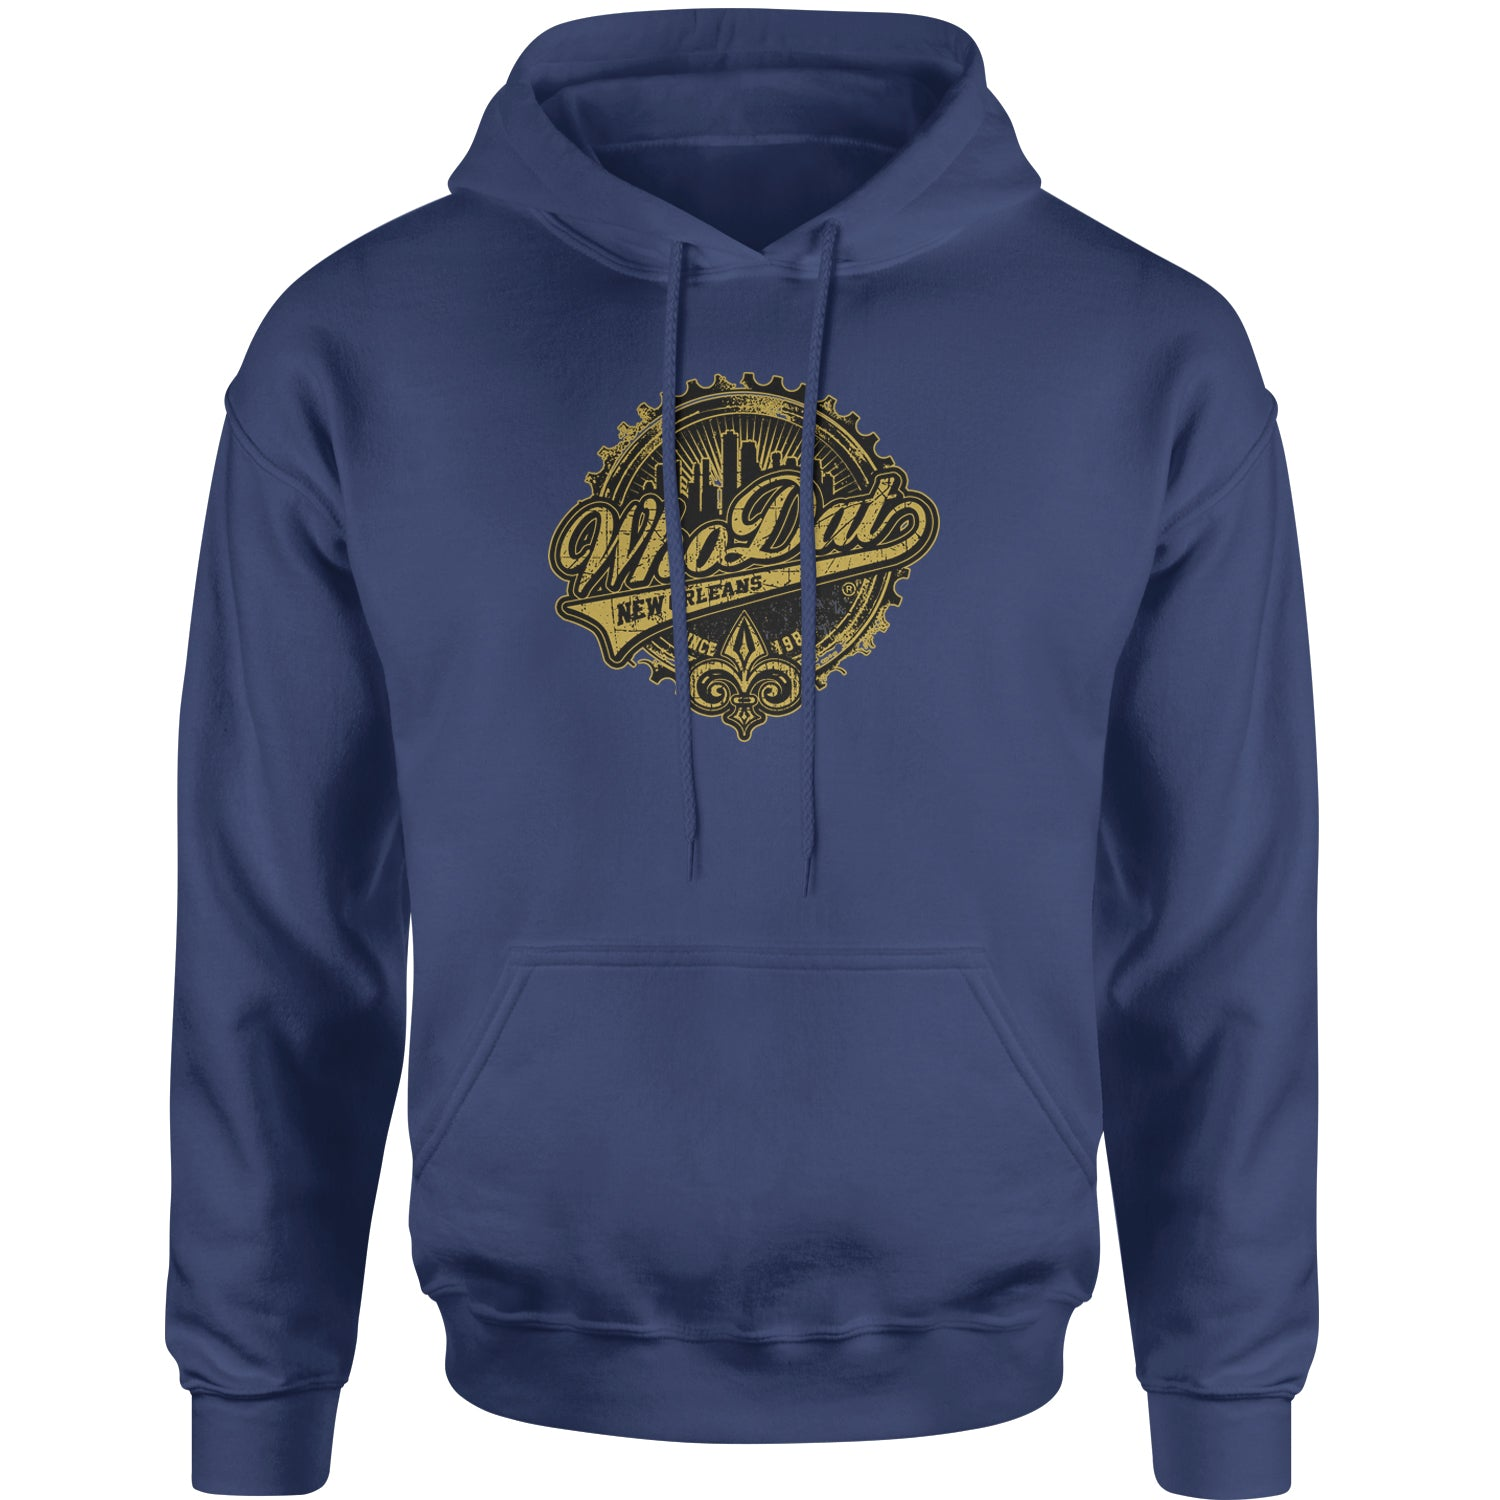 Expression Tees Bottle Cap Who Dat New Orleans Youth-Sized Crewneck Sweatshirt